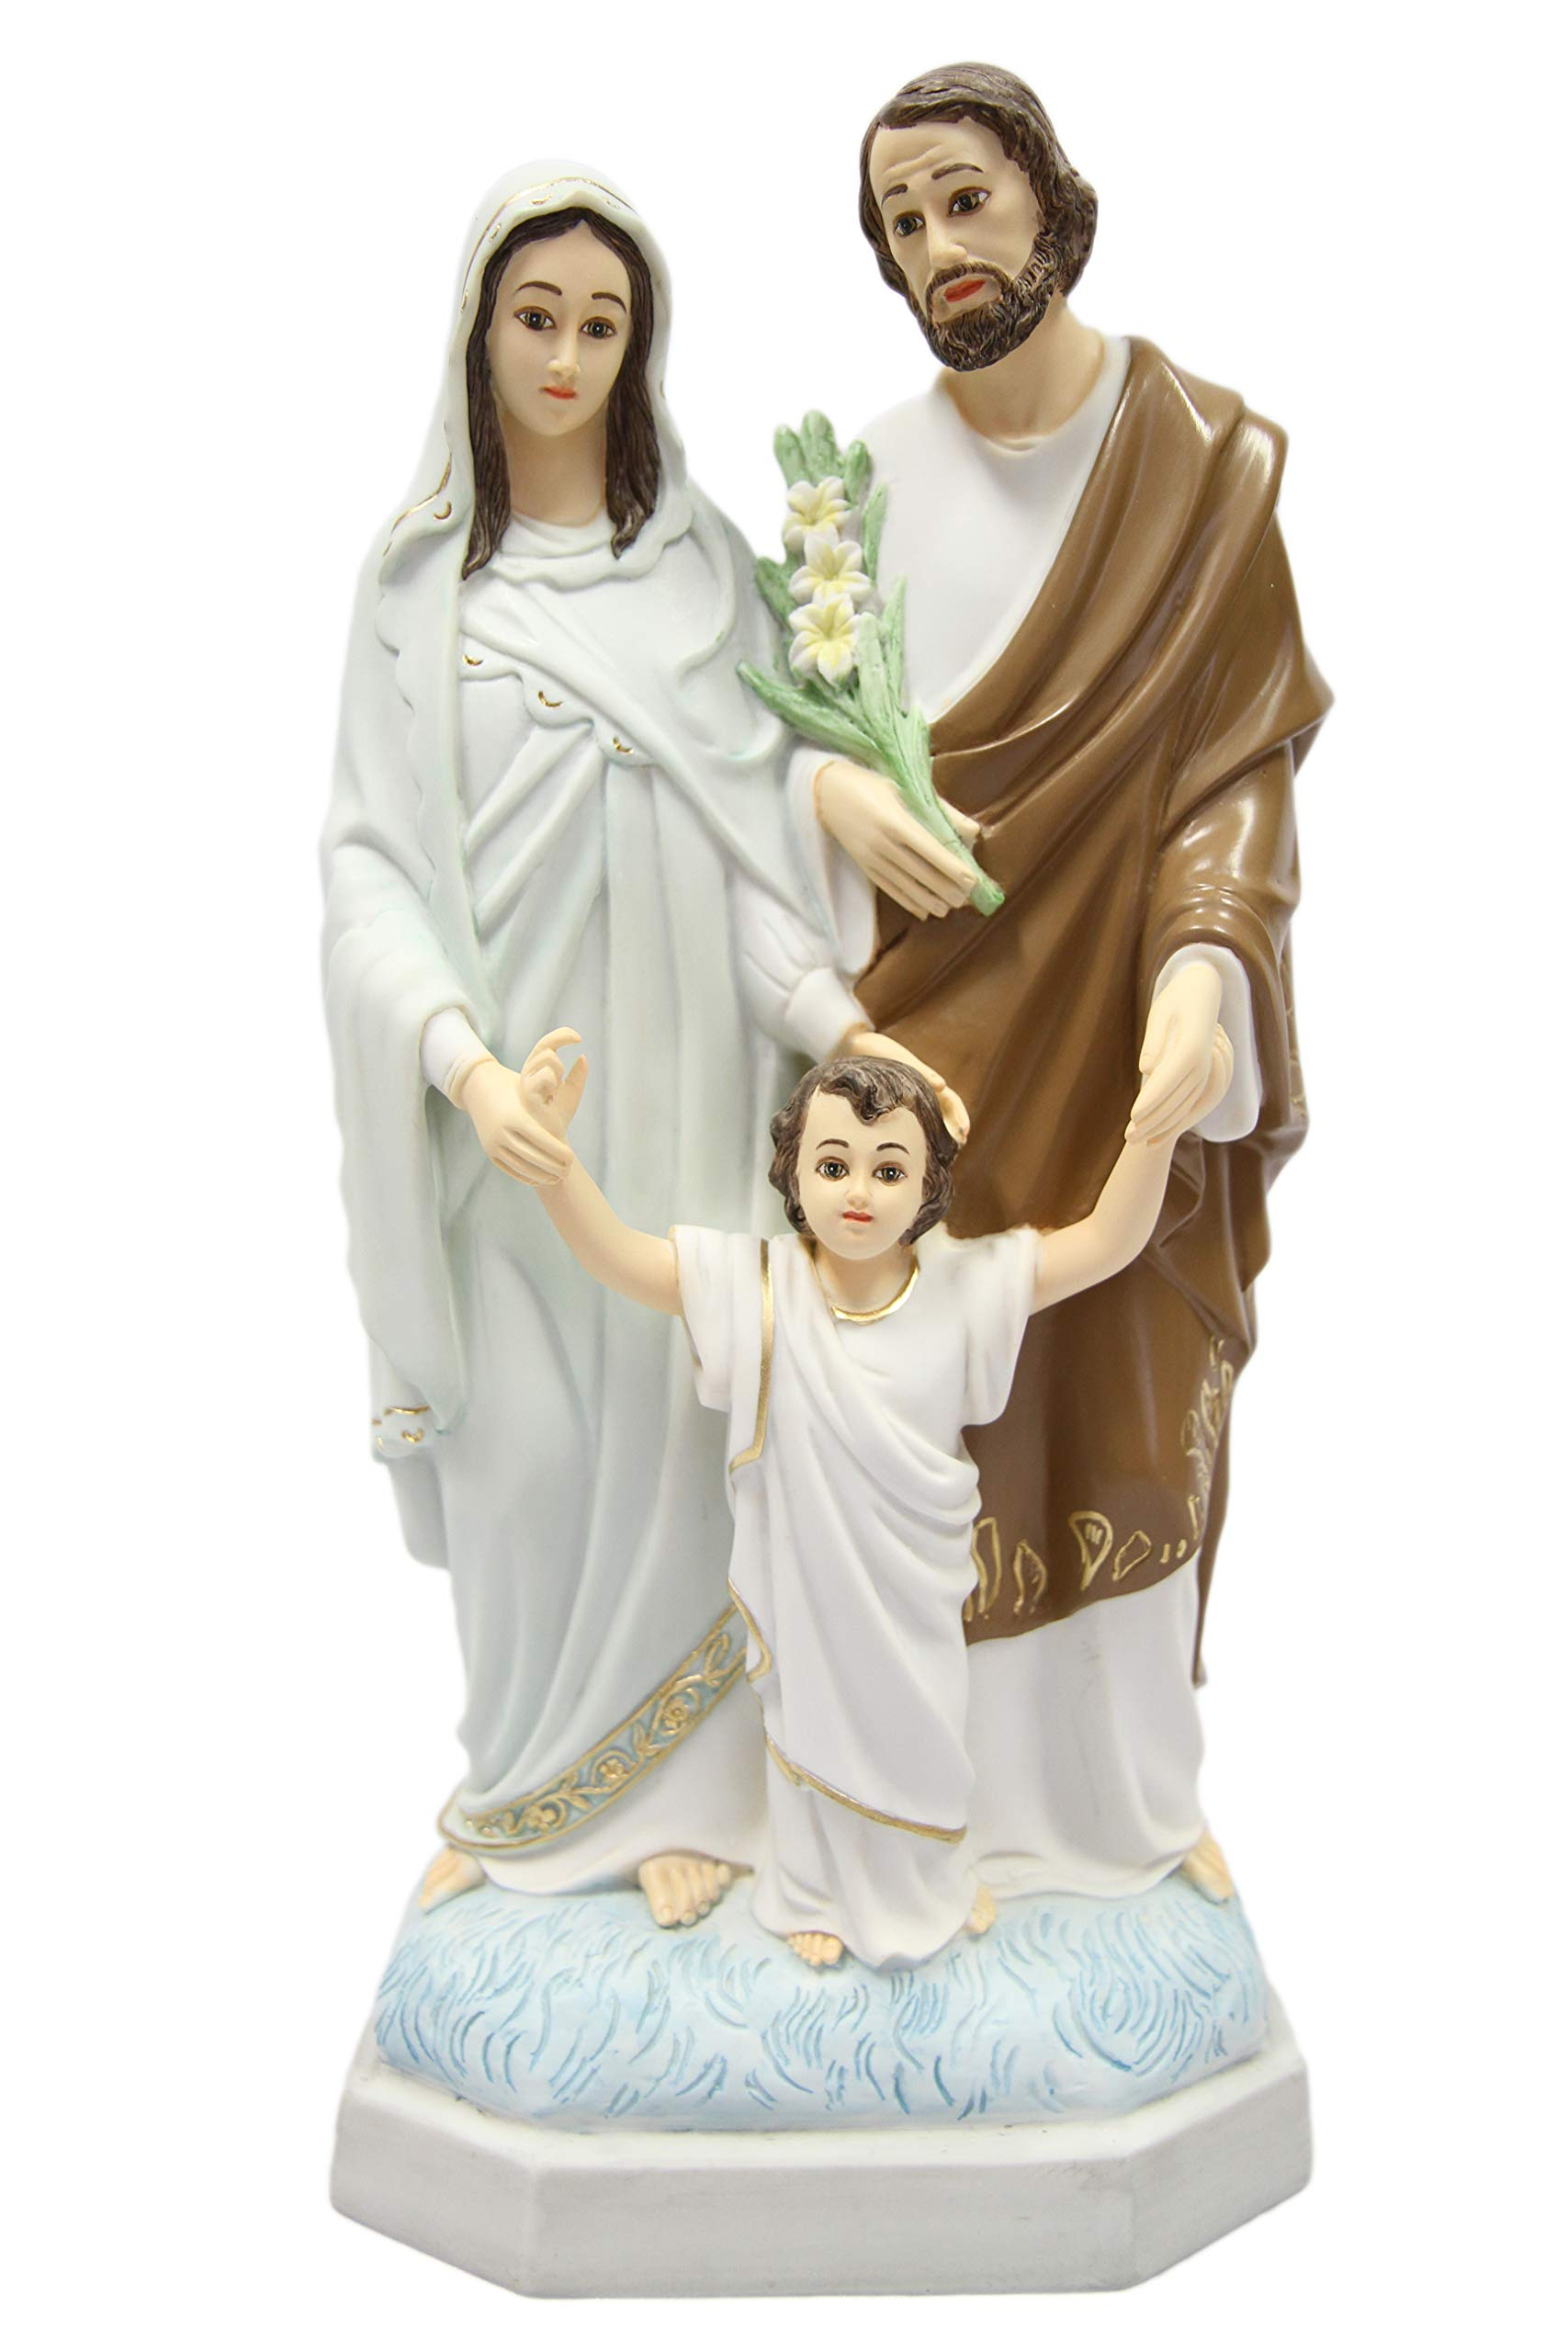 15'' Holy Family Joseph Mary Jesus Catholic Religious Statue Figure By Vittoria Collection Made in Italy